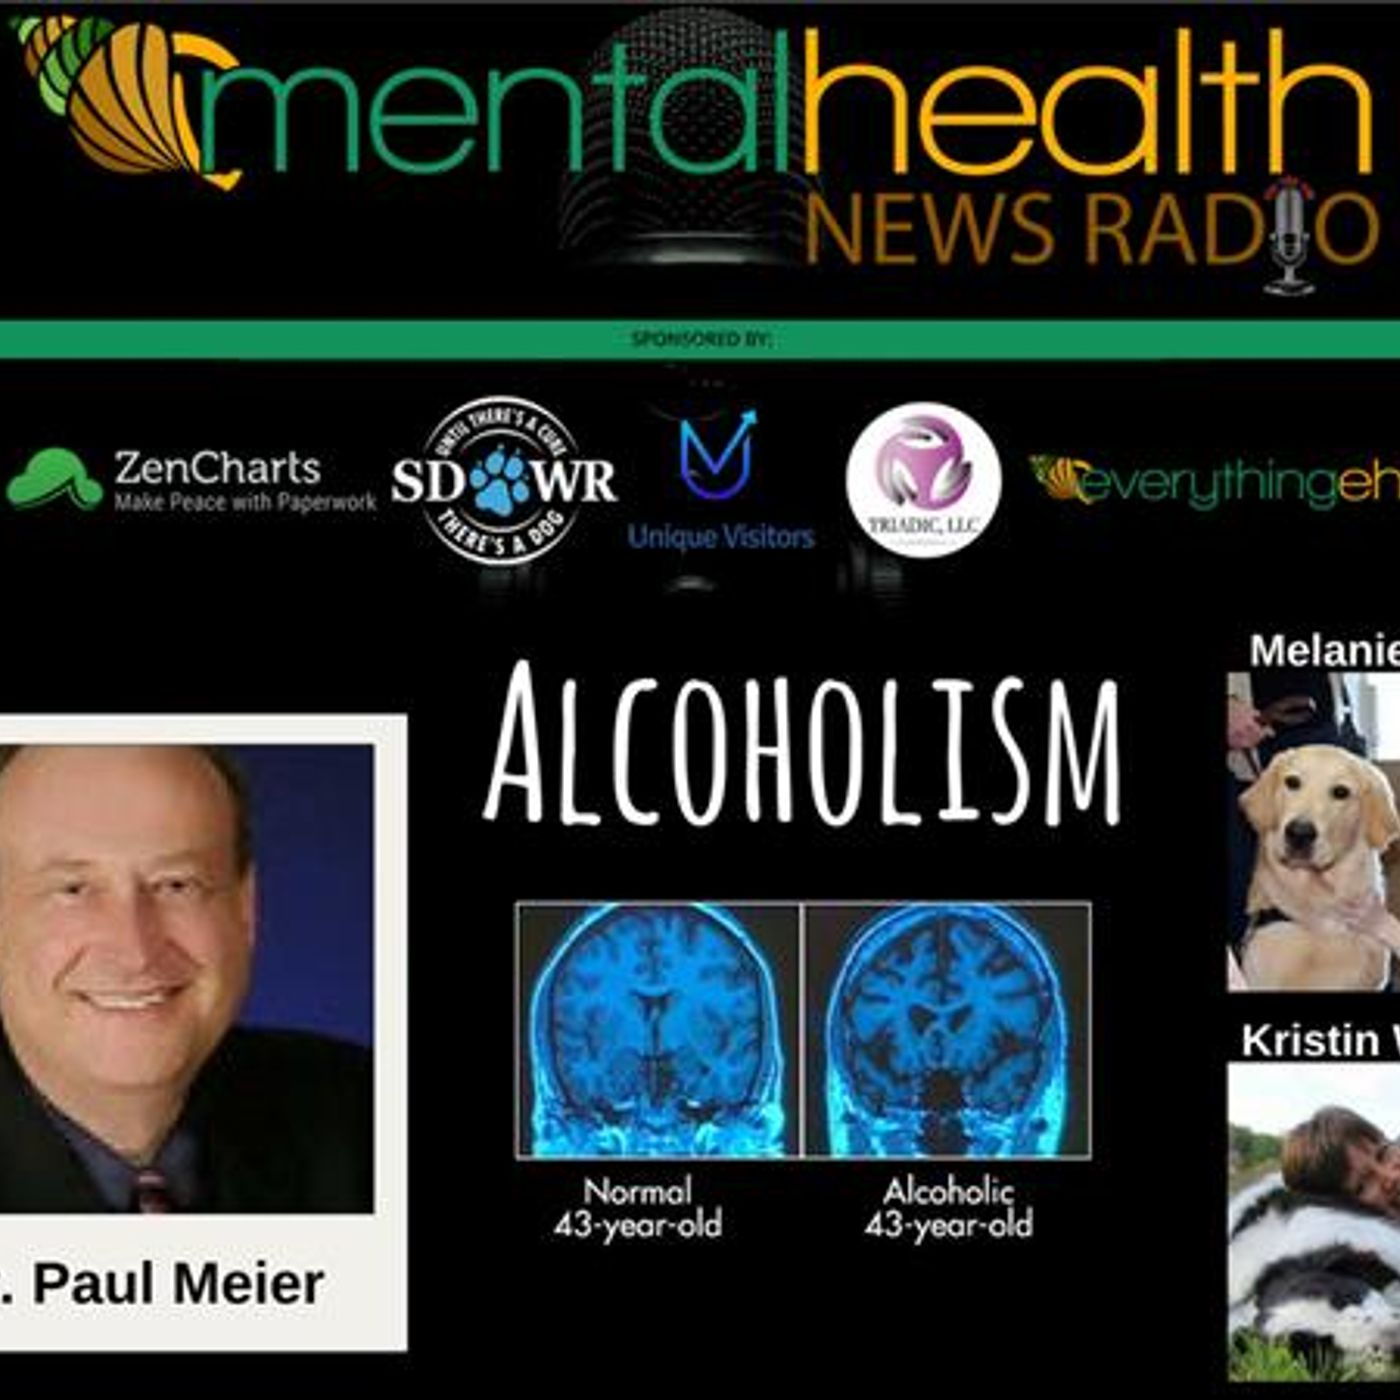 Mental Health News Radio - Round Table Discussions with Dr. Paul Meier: Alcoholism